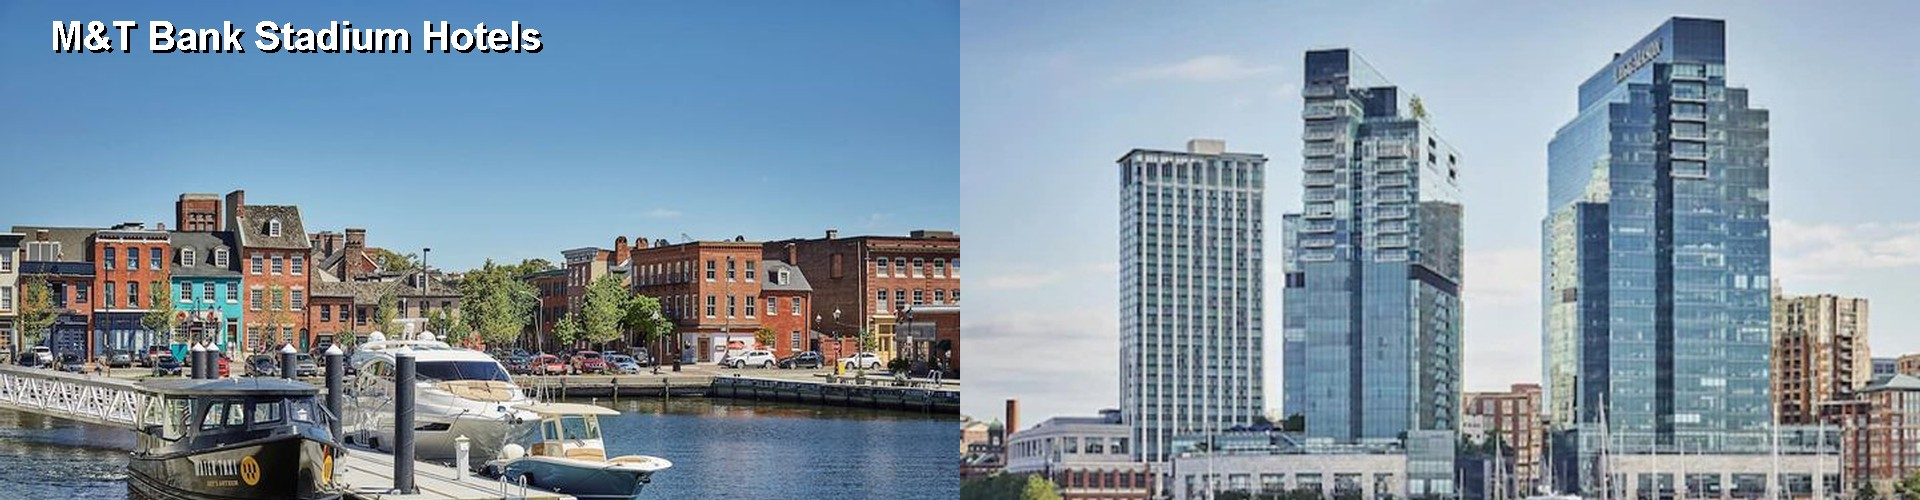 5 Best Hotels near Baltimore Ravens M and T Bank Stadium